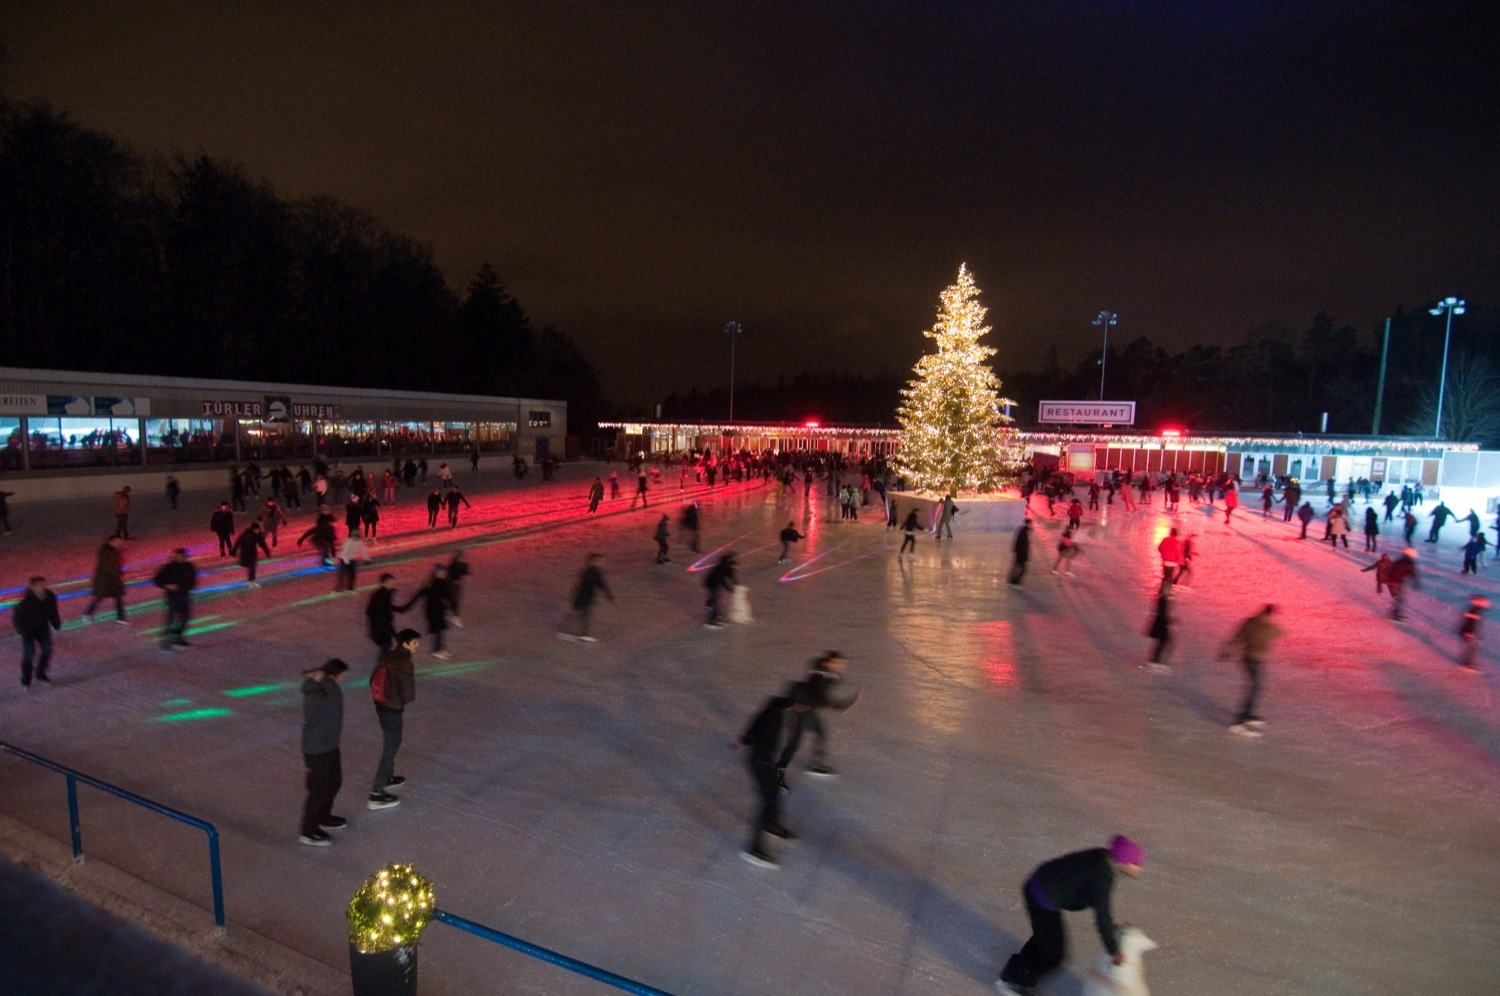 Dolder sports Zurich ice skating